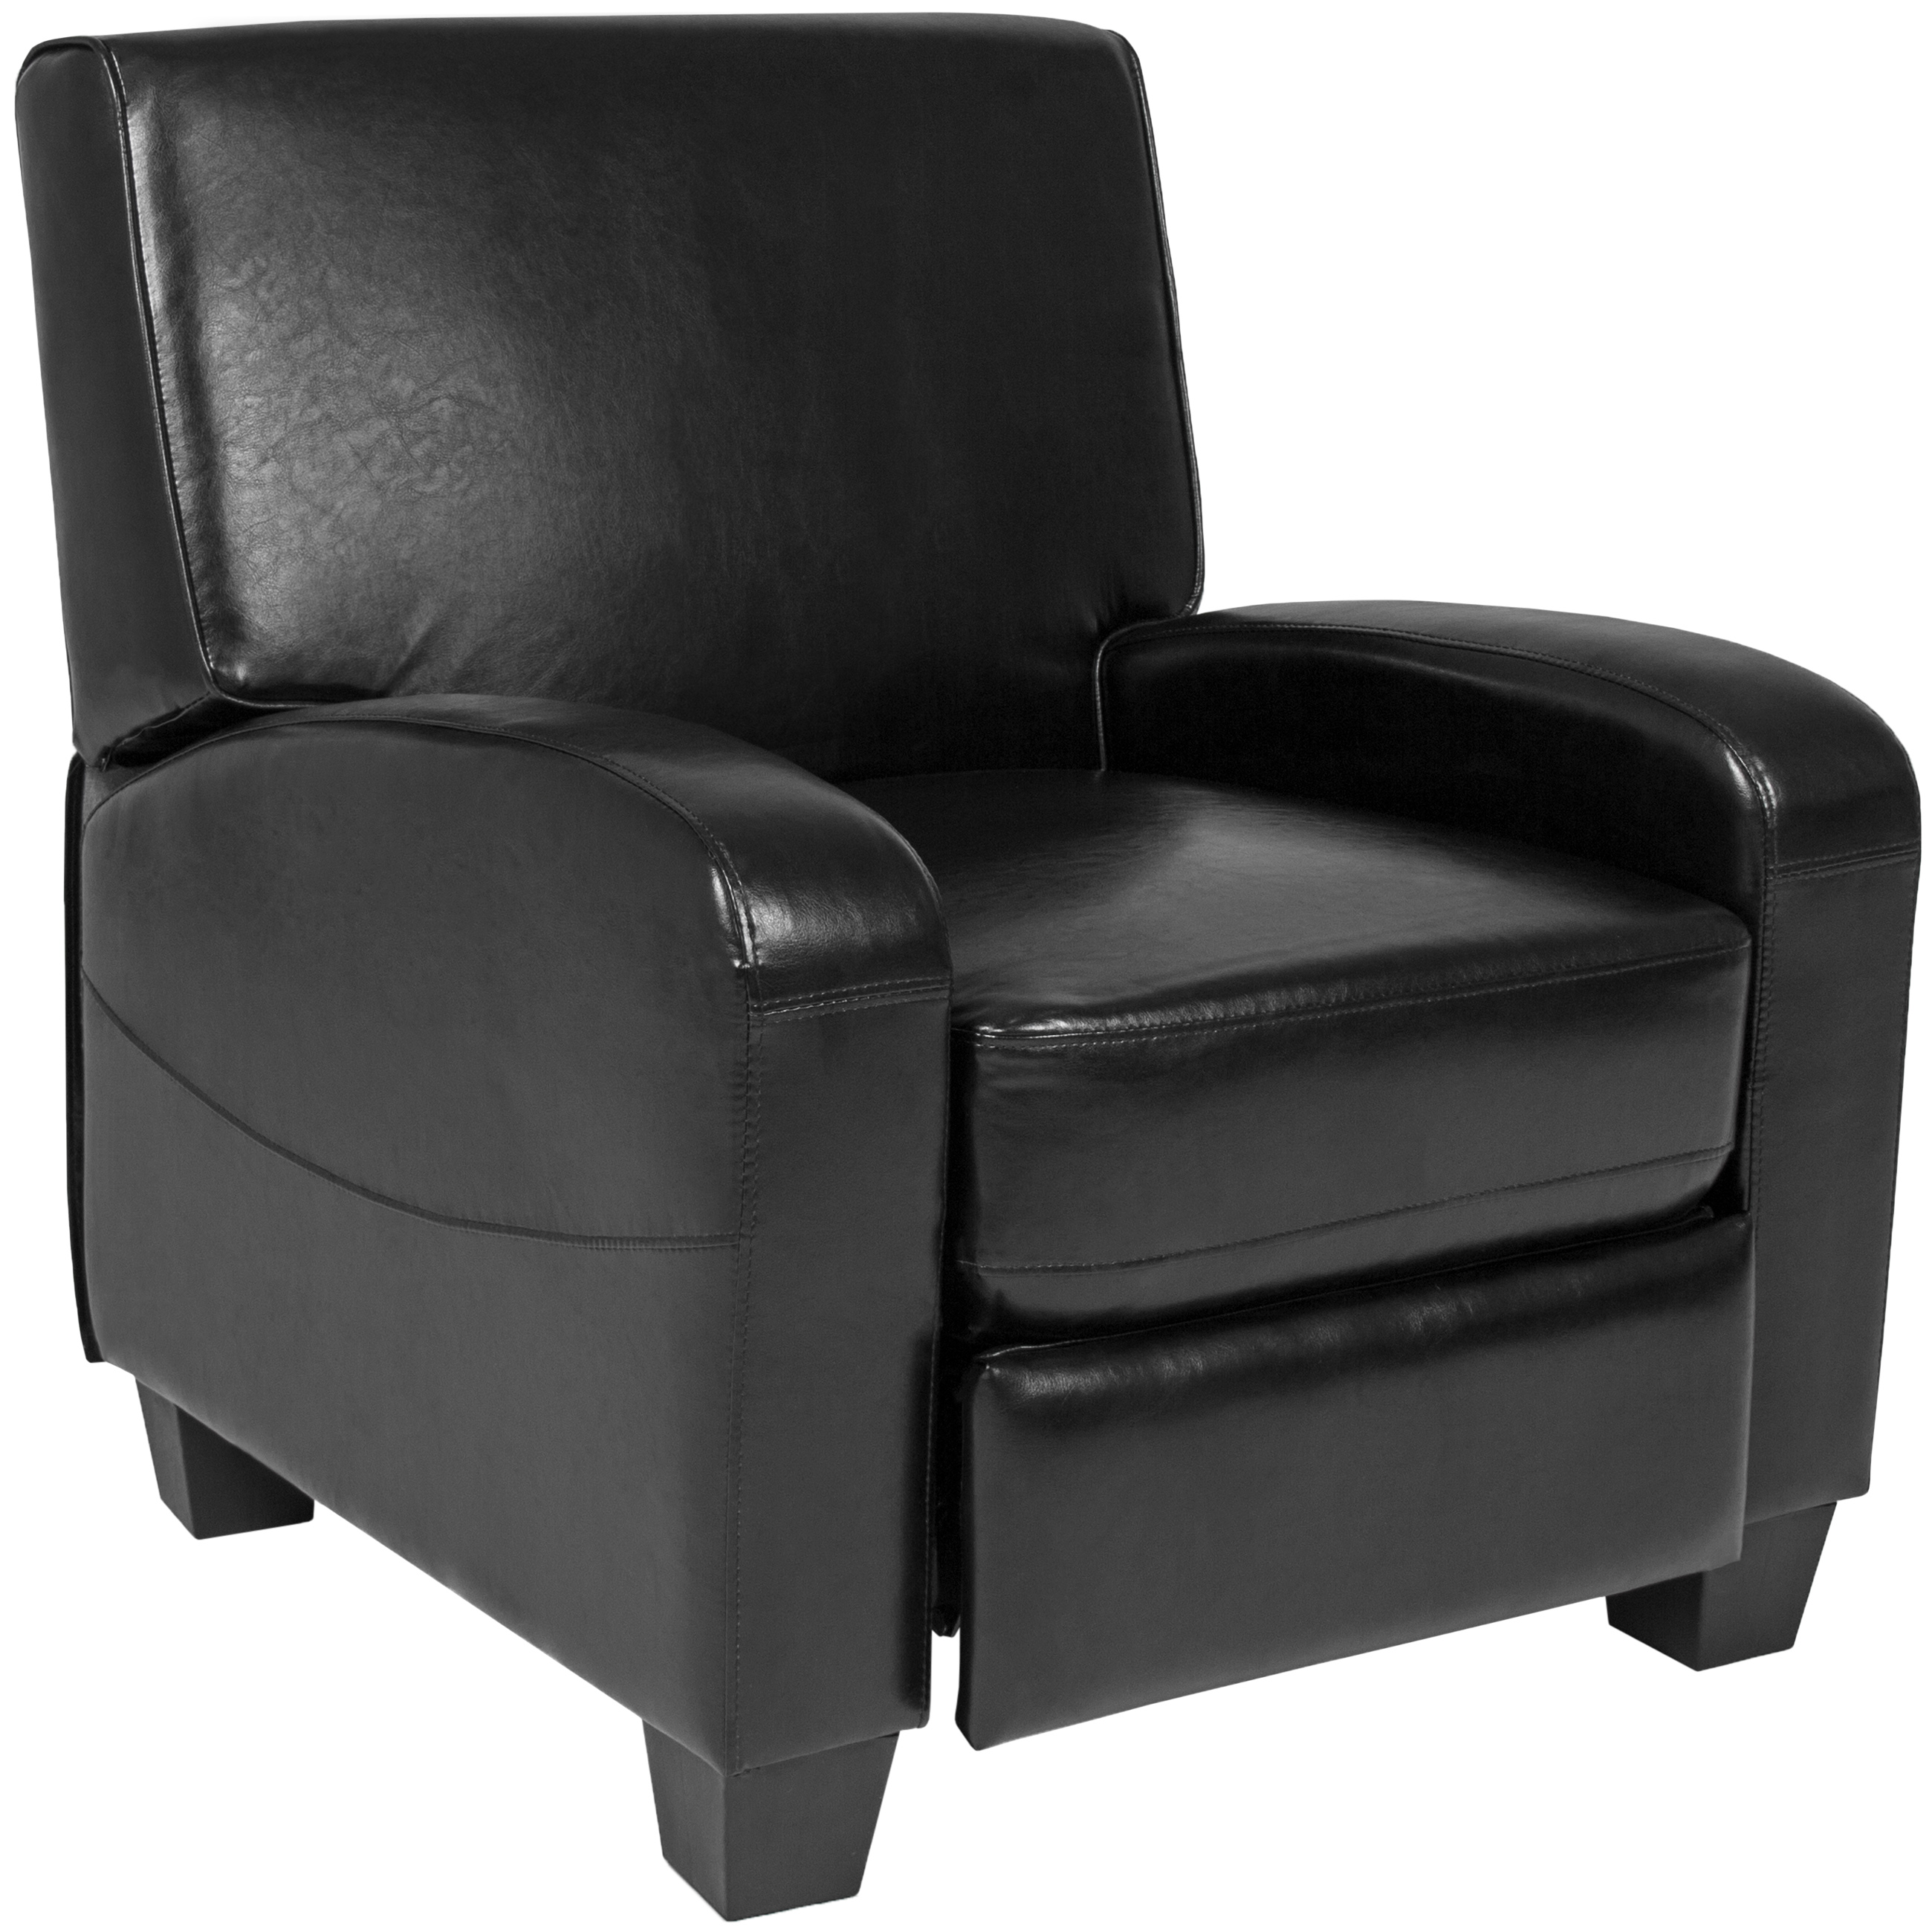 Best Choice Products Padded Upholstery Faux Leather Modern Single Recliner  Chair For Living Room, Home